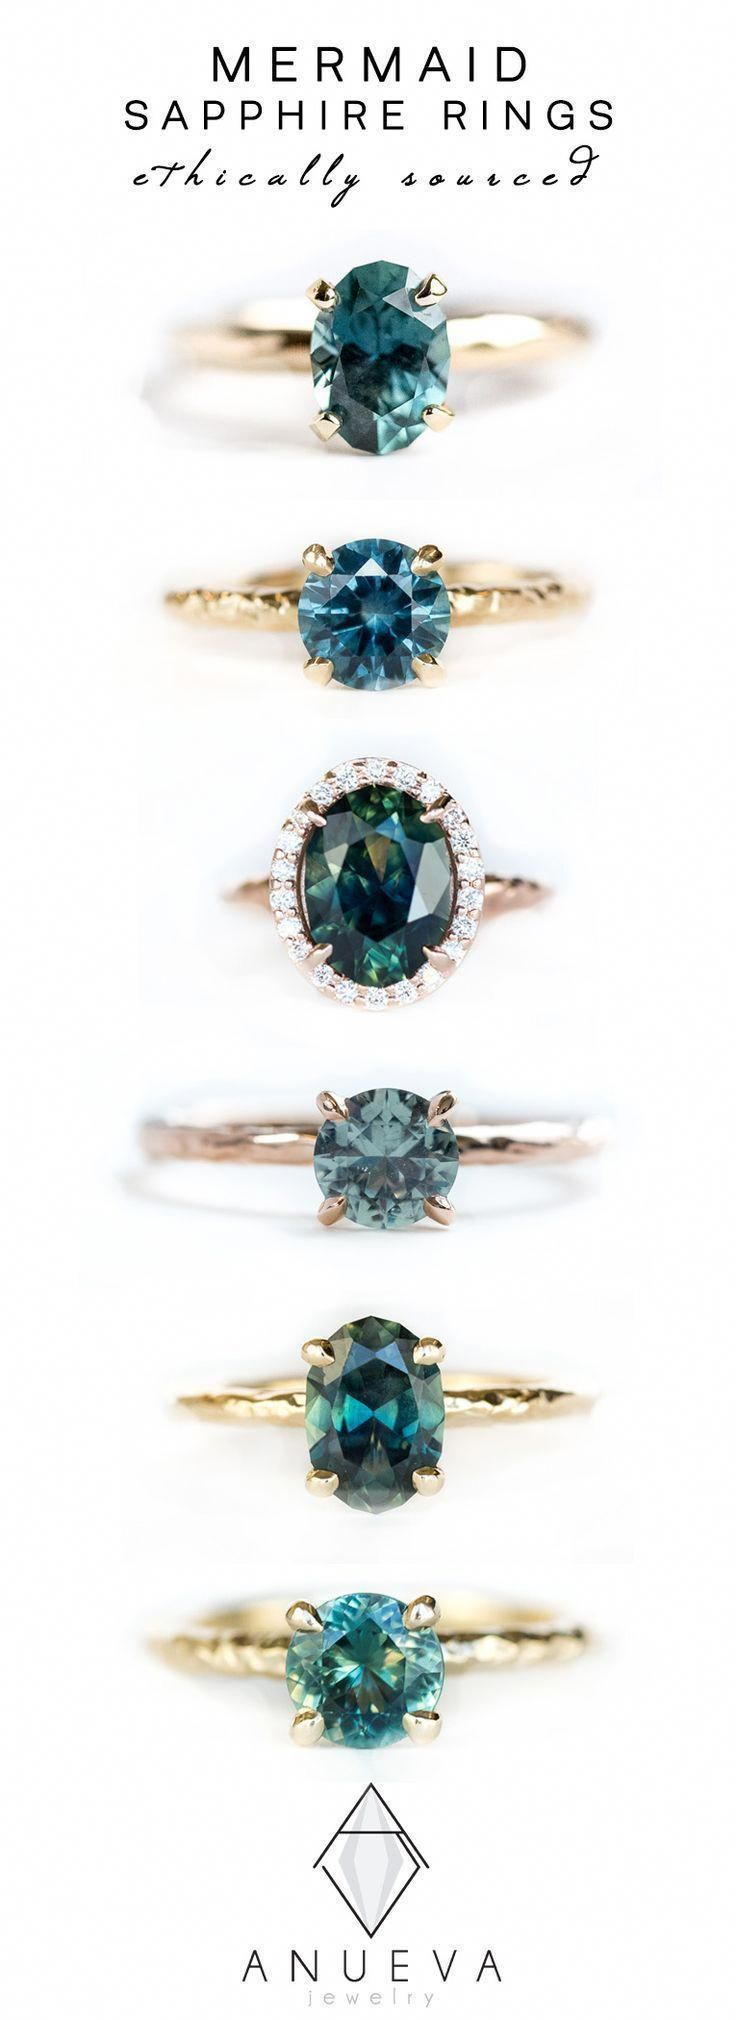 Blue Teal Mermaid Sapphire Rings in Yellow & Rose Gold by Anueva Jewelry #sapphirering #engagementring #alternativeengagementring #cushionengagementring